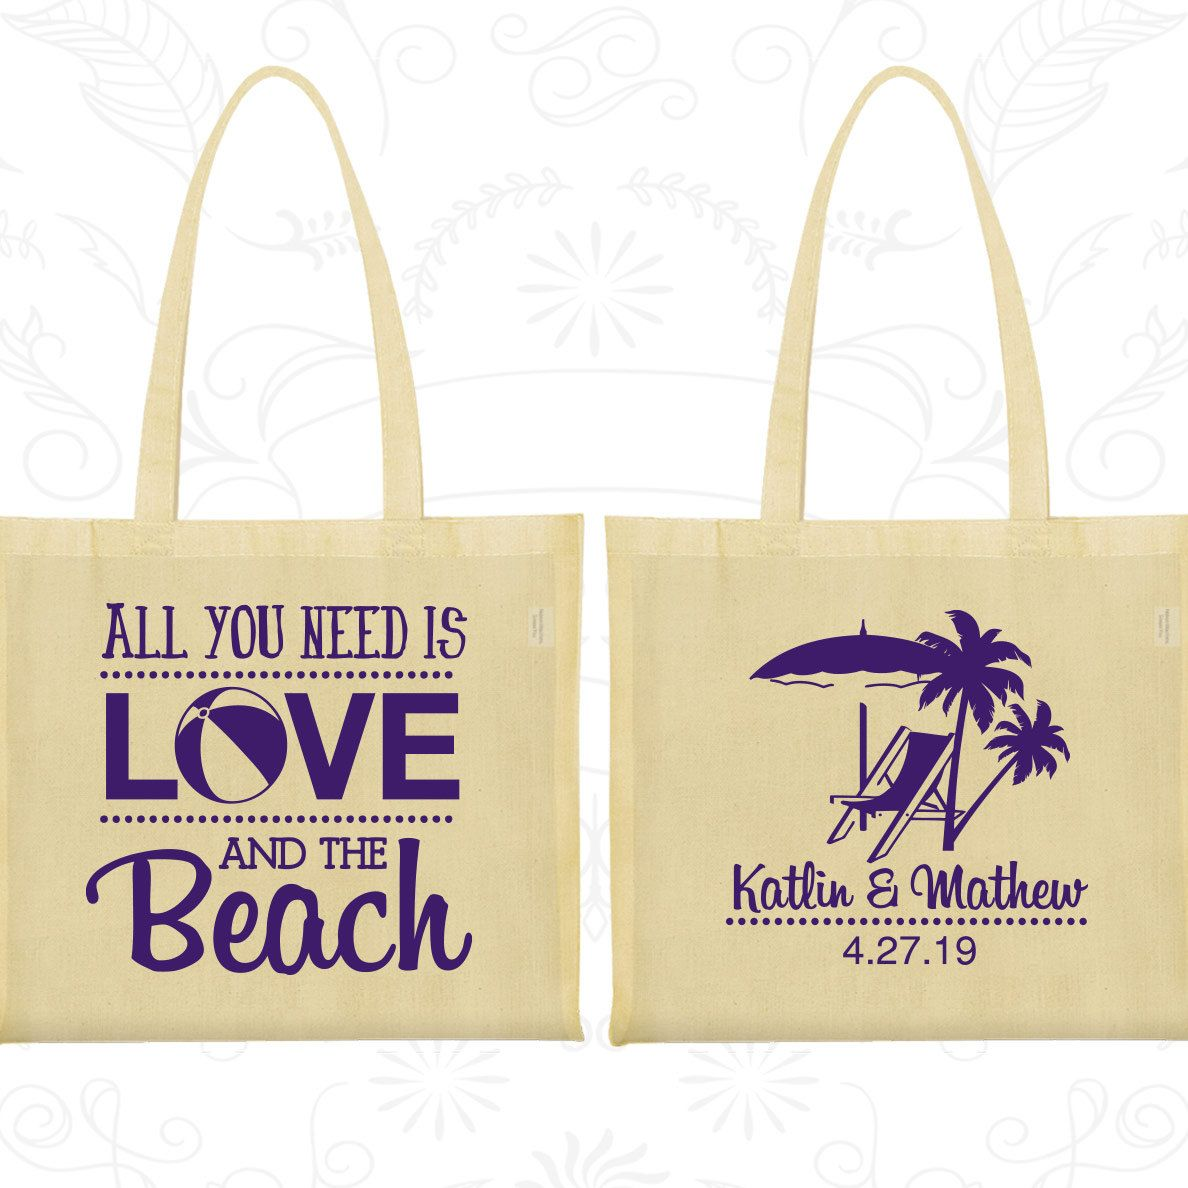 All You Need Is Love And The Beach Bags Promotional Wedding